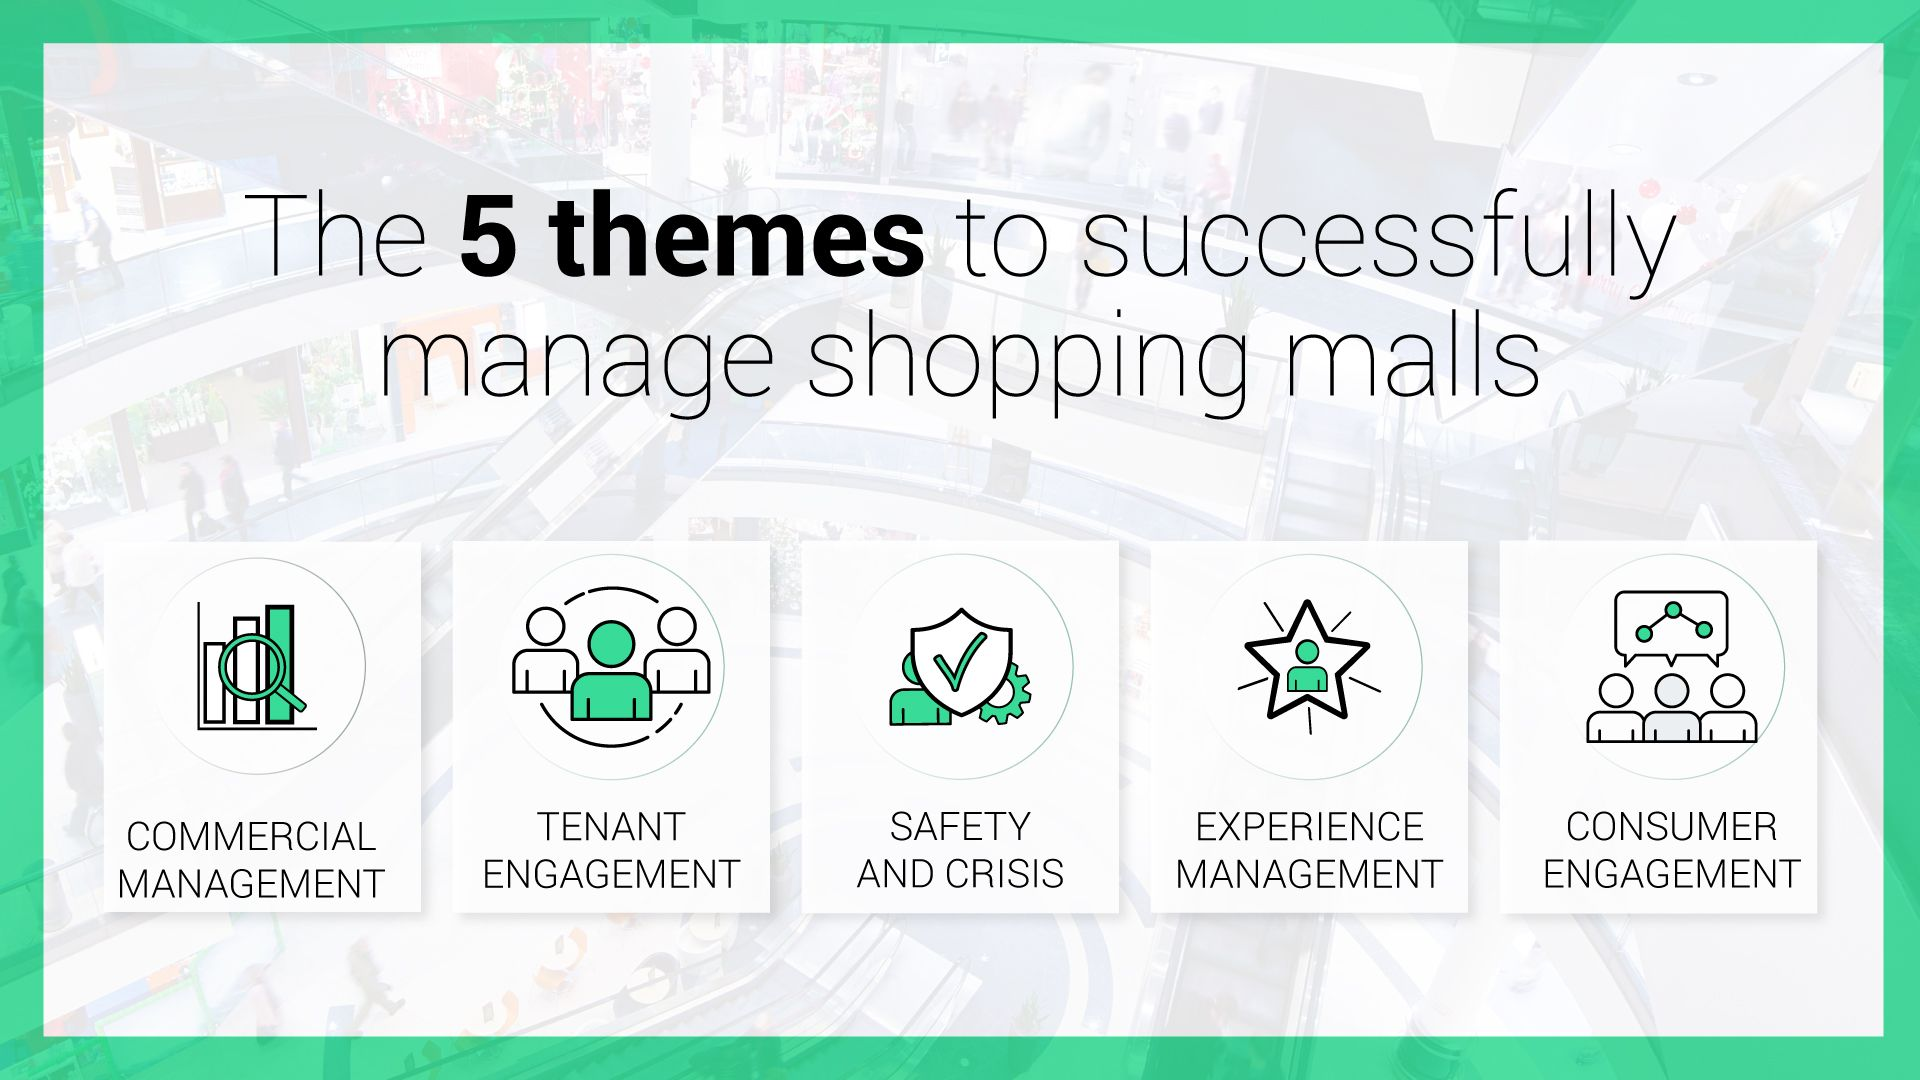 Five themes for the successful shopping mall management